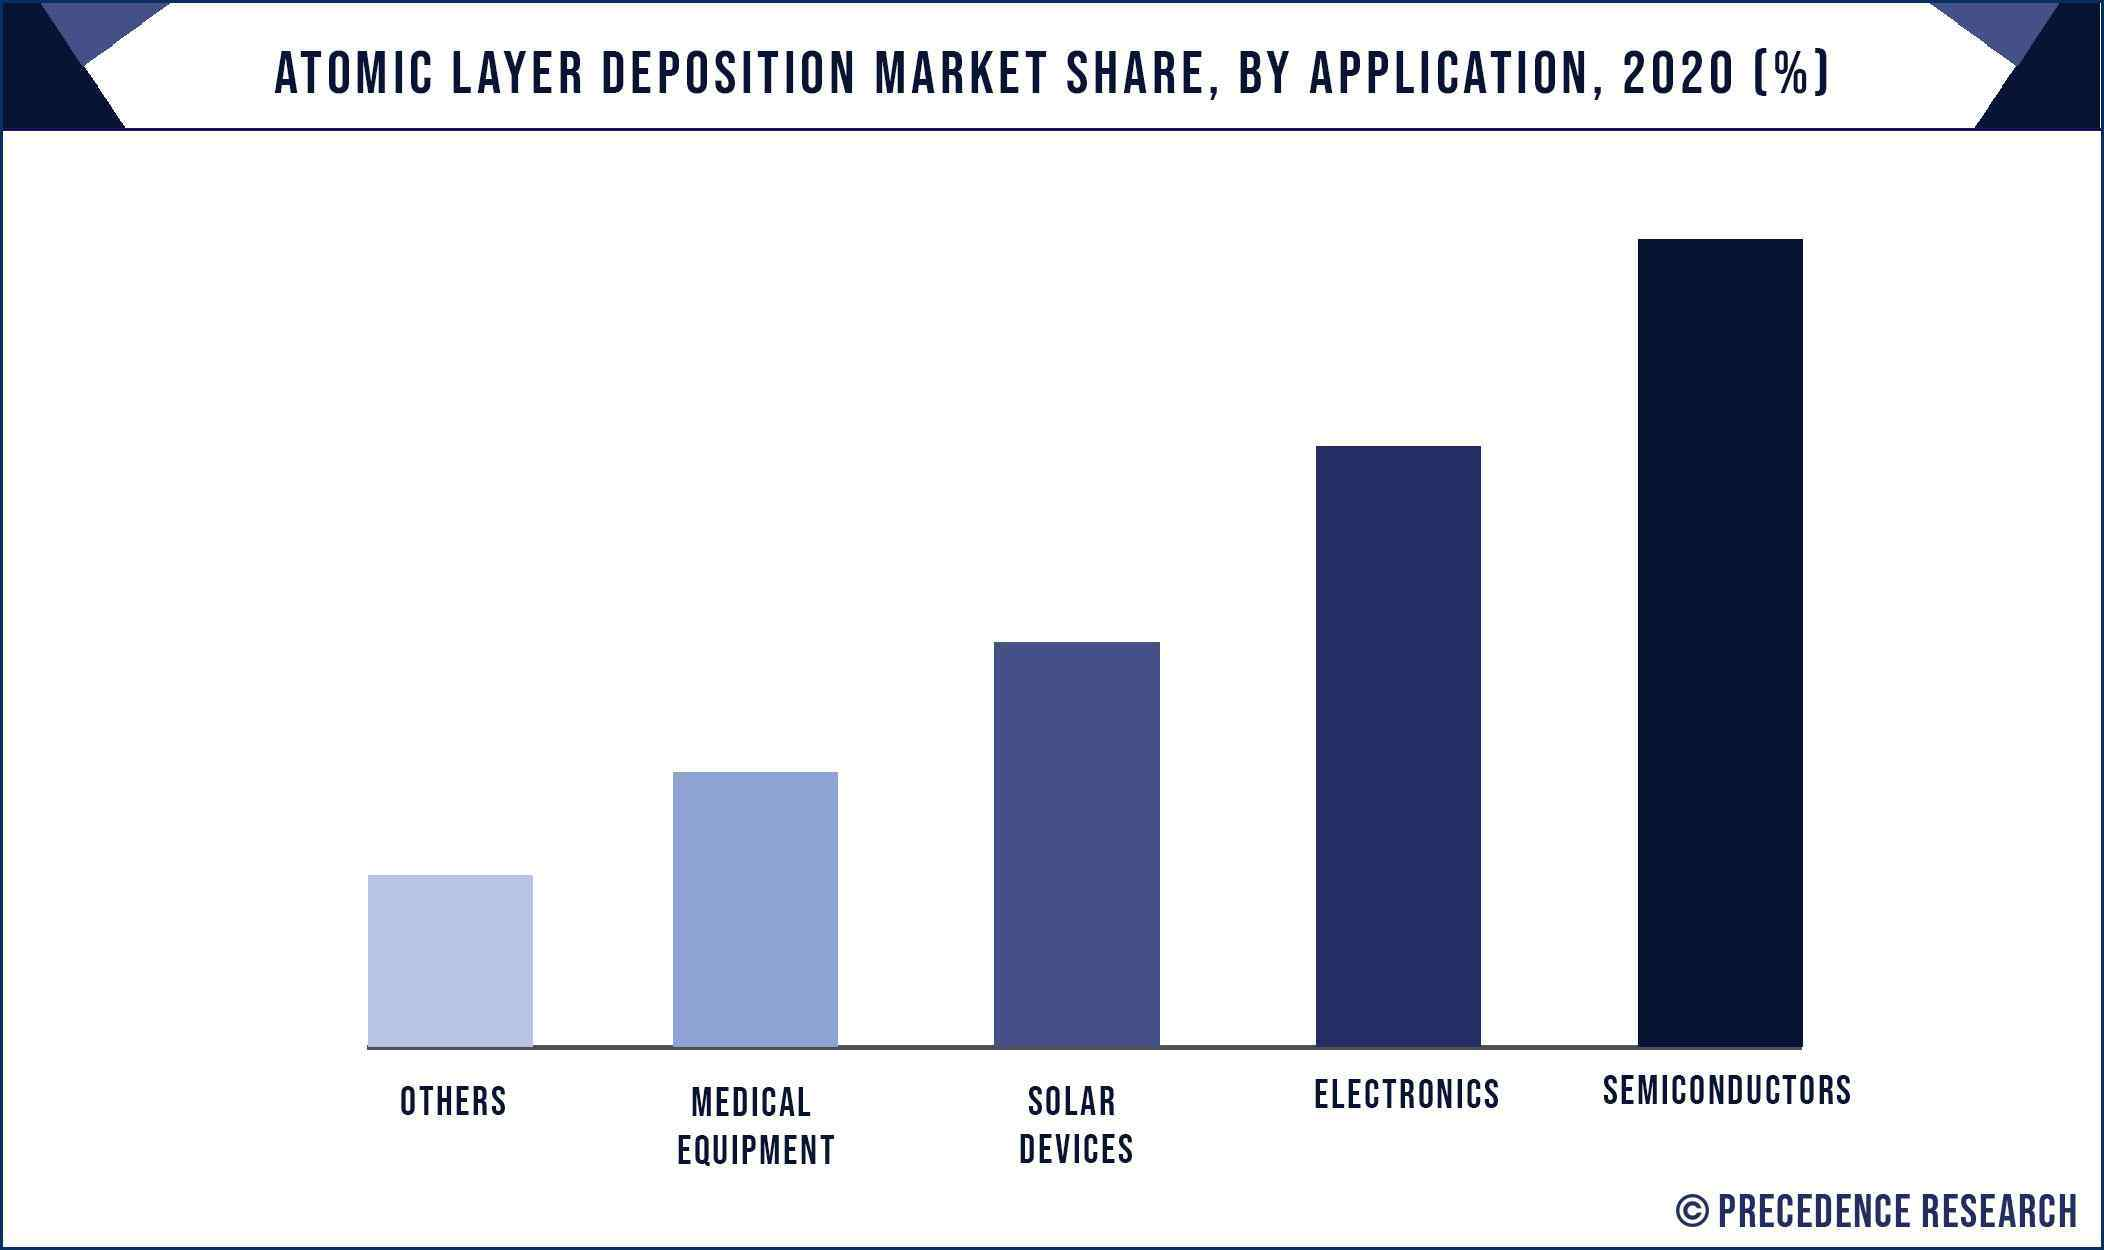 Atomic Layer Deposition Market Share, By Application, 2020 (%)